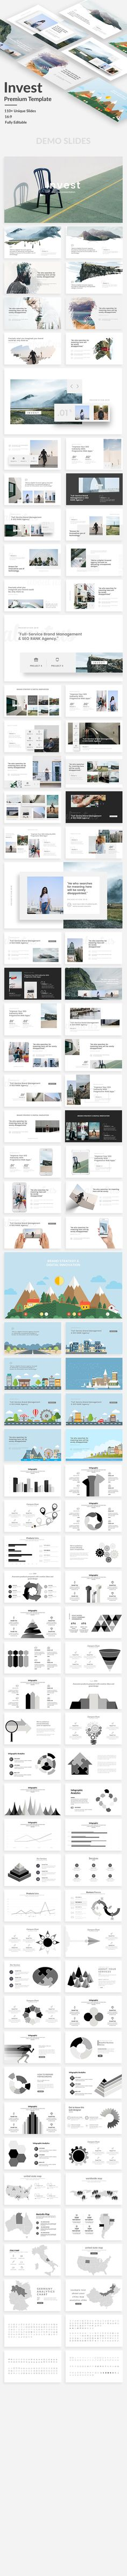 Invest Premium Powerpoint Template — Powerpoint PPT #infographic #chart • Available here ➝ https://graphicriver.net/item/invest-premium-powerpoint-template/20922556?ref=pxcr